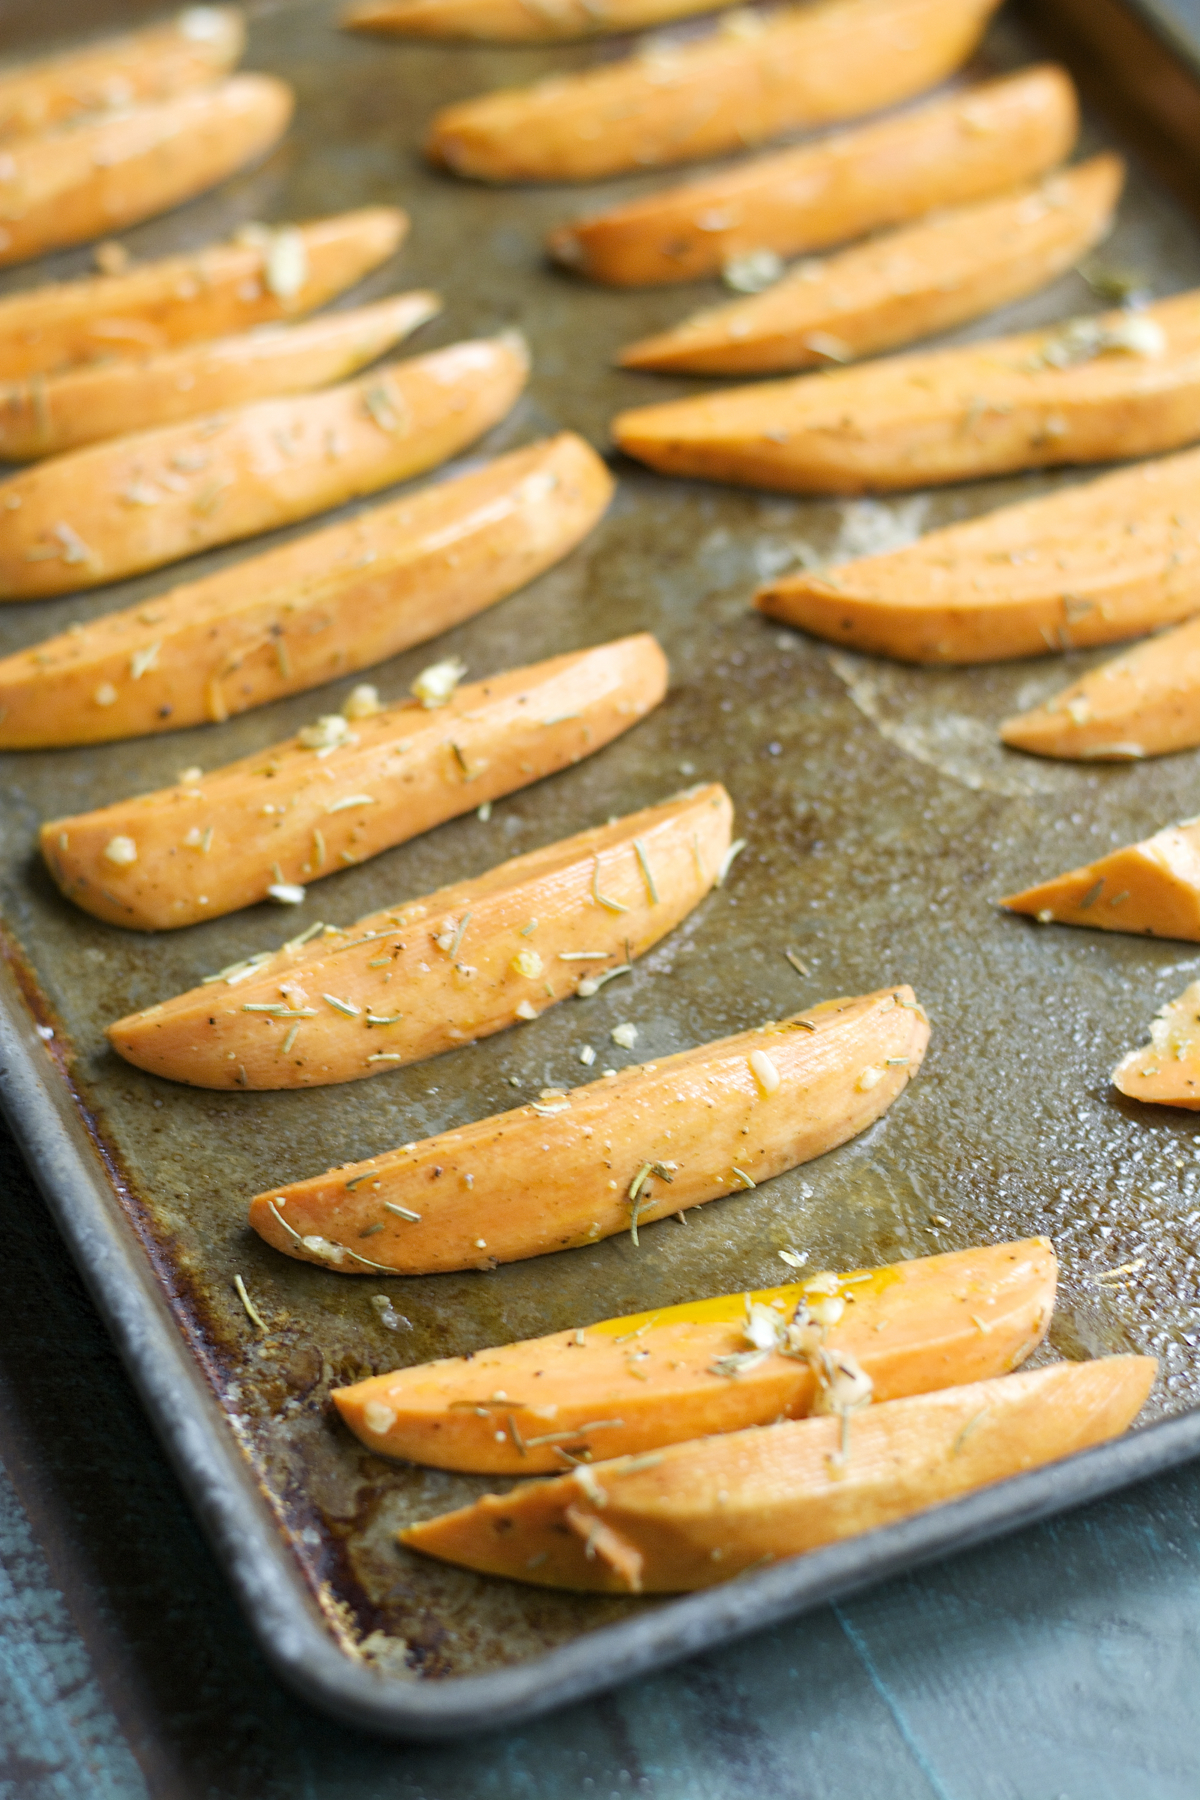 unbaked sweet potato fries on a baking tray